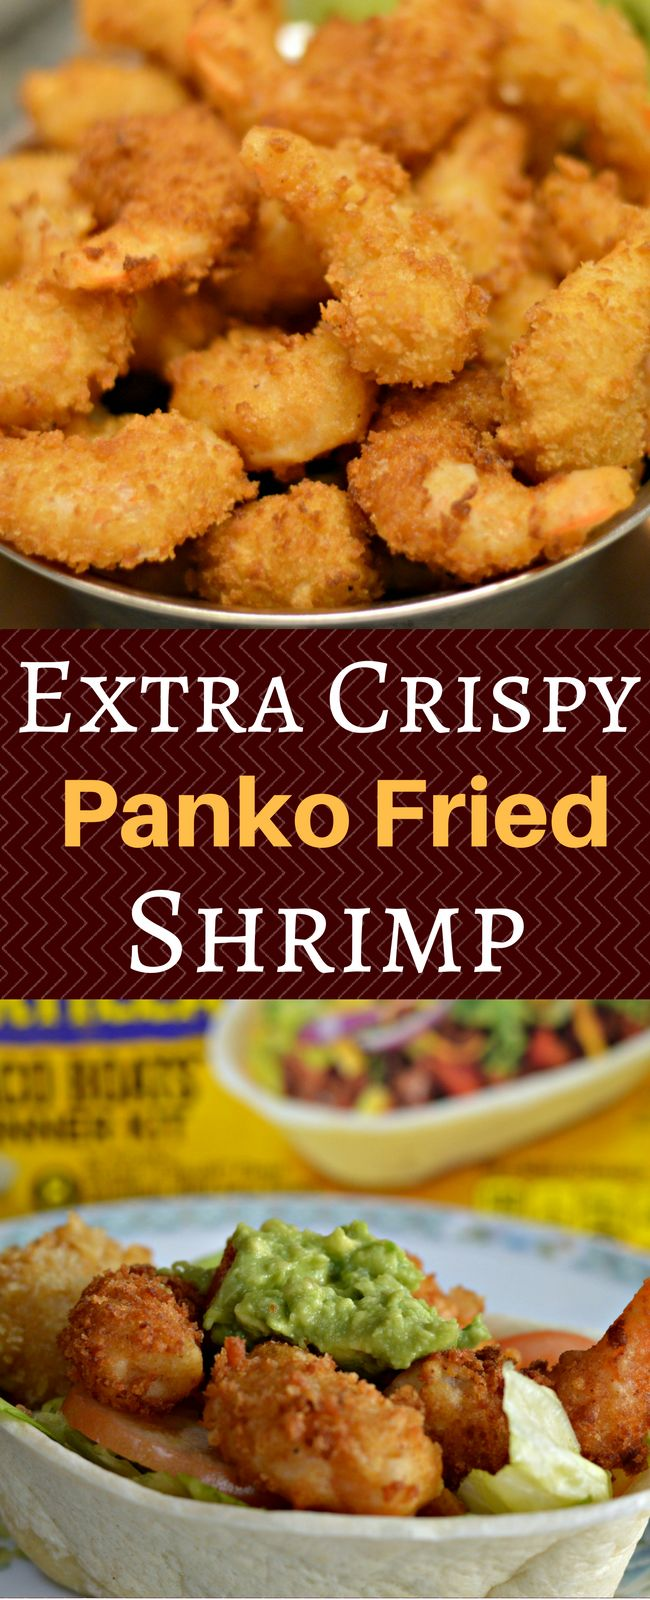 These Extra Crispy Panko Fried Shrimp are delicious and are perfect on their own or in a delicious taco bowl. Enjoy! #OEPGameday #ad @old